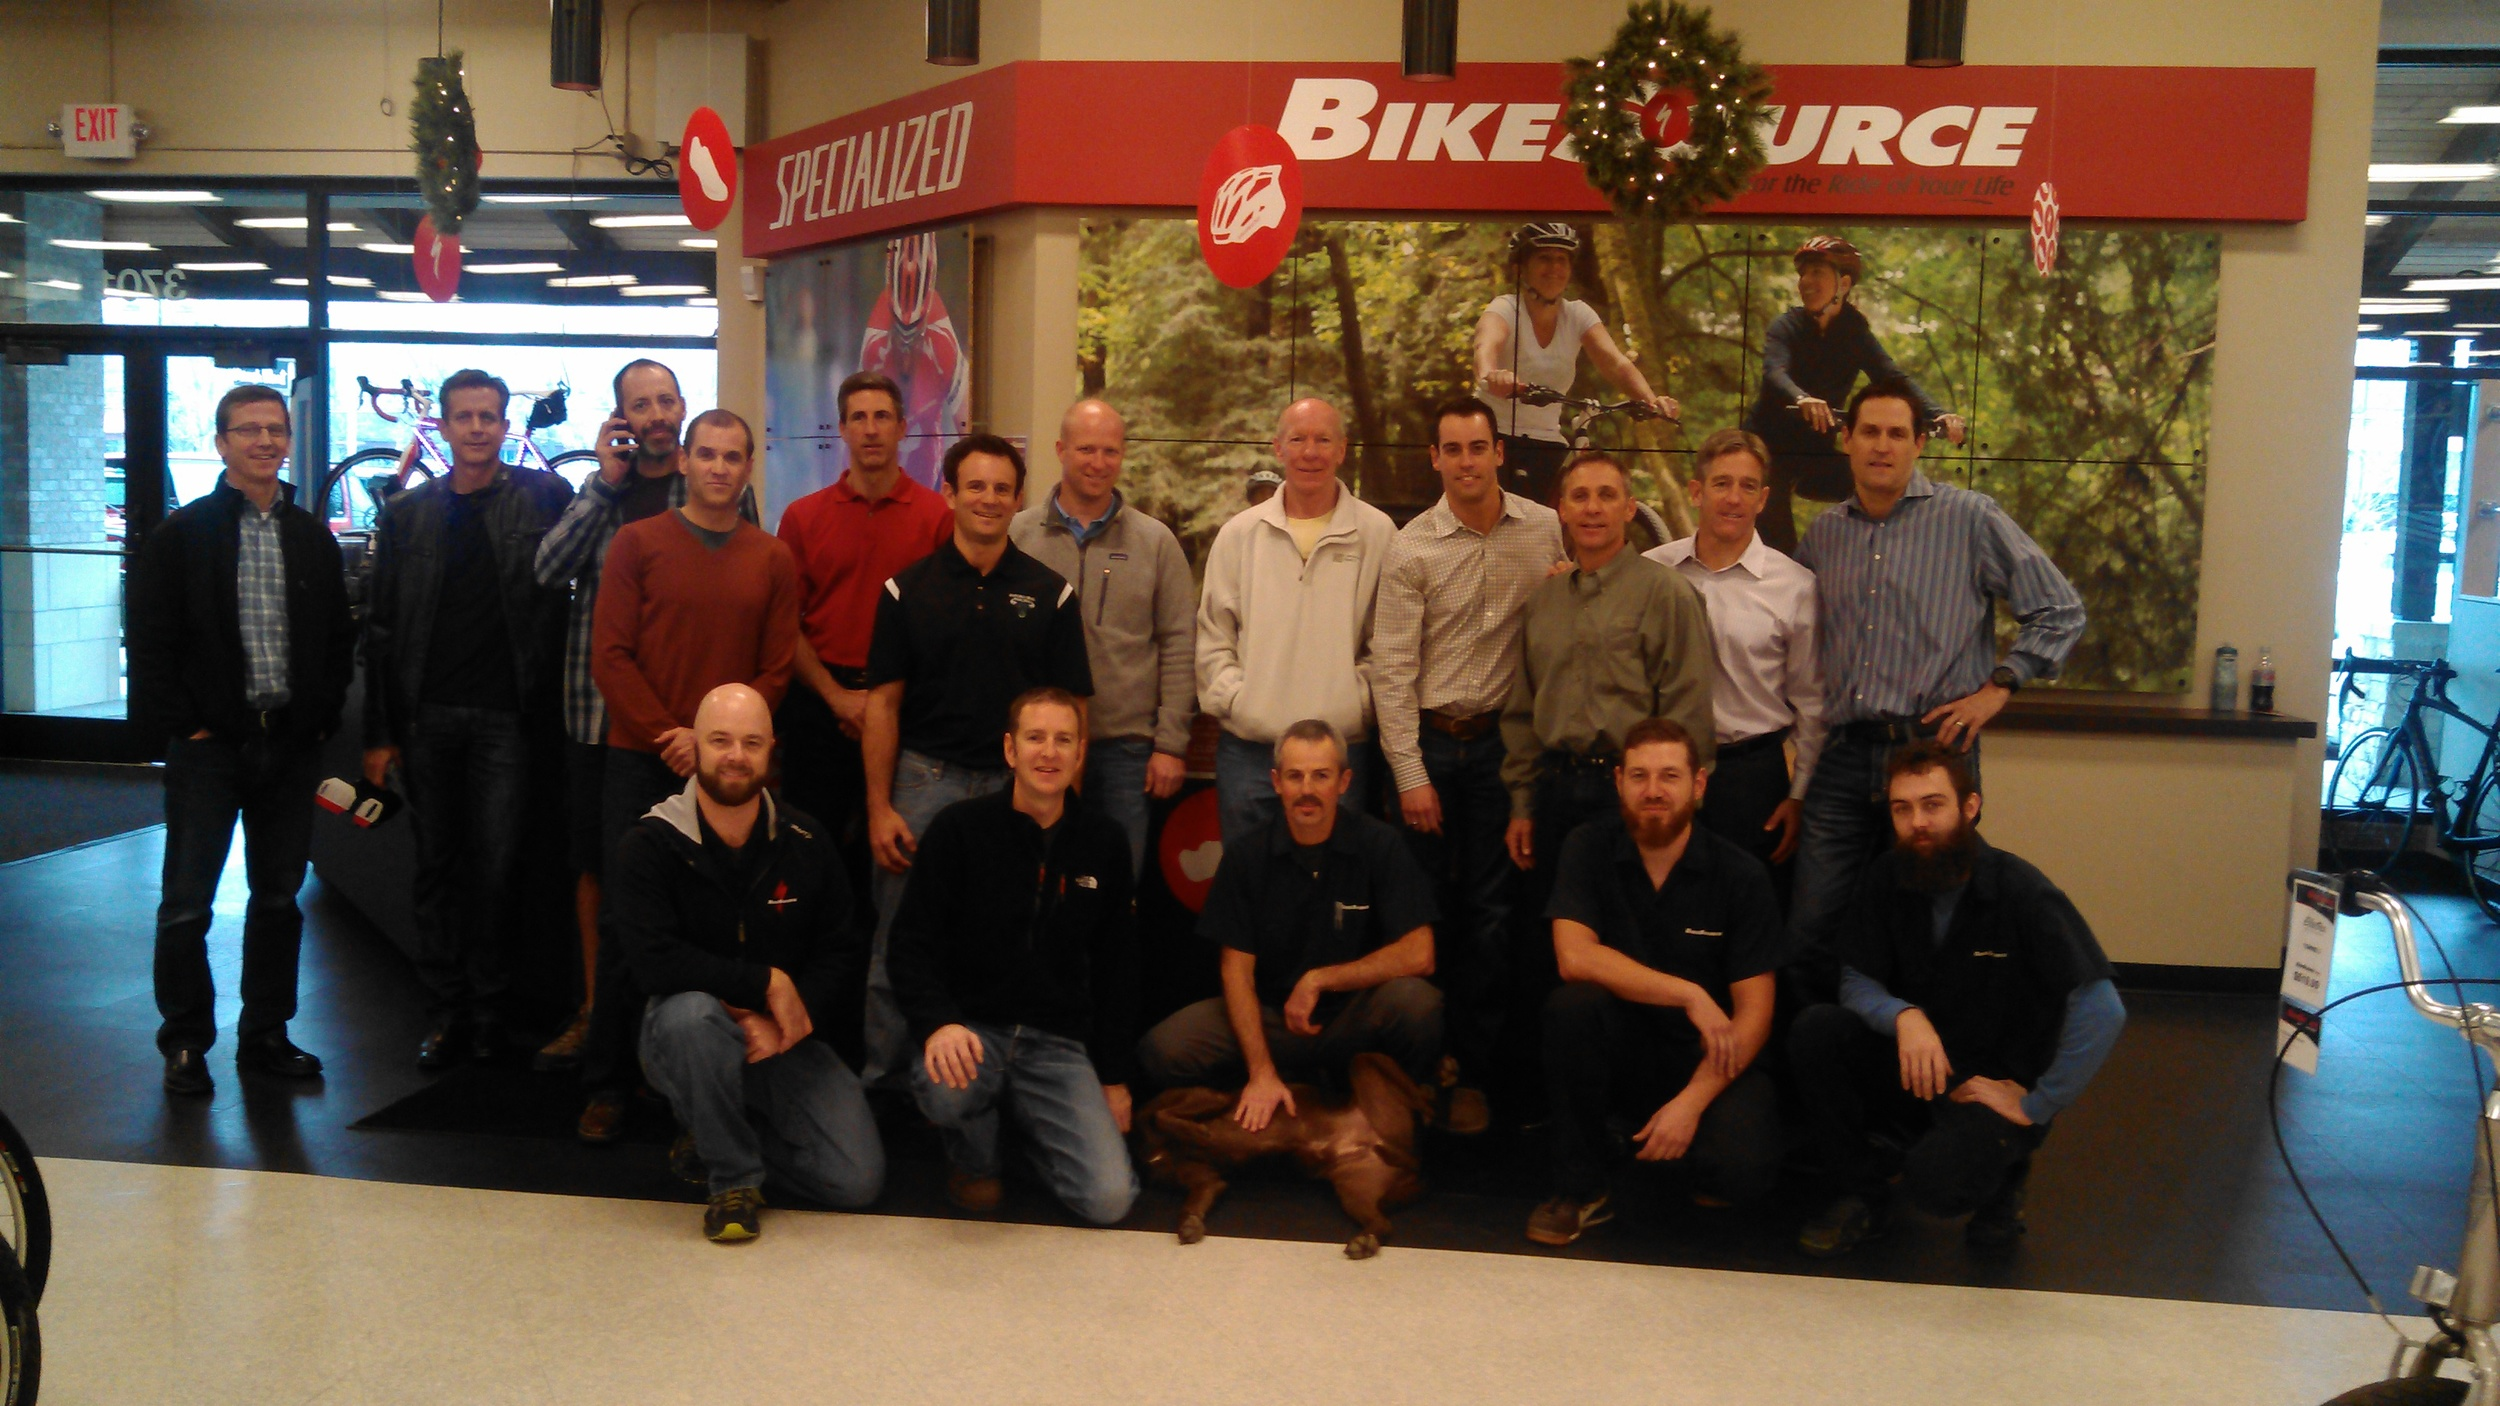 The Raging Bulls host a lunch for the great crew at Bike Source